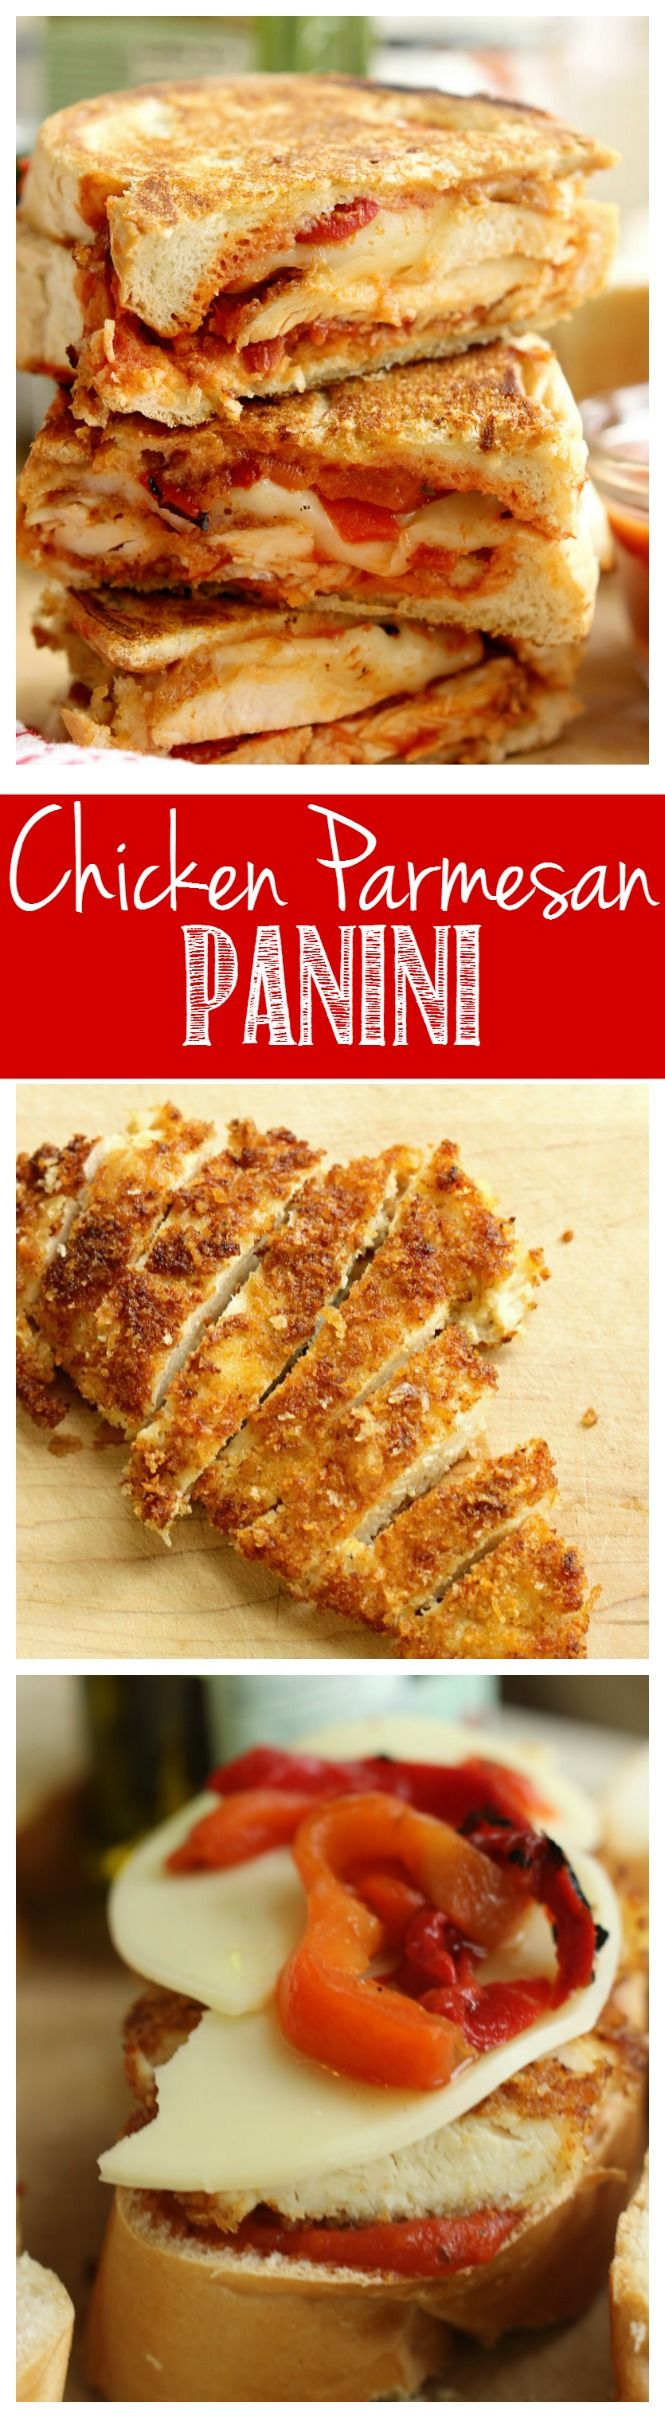 Chicken Parmesan Panini - Grilled sandwiches fille…